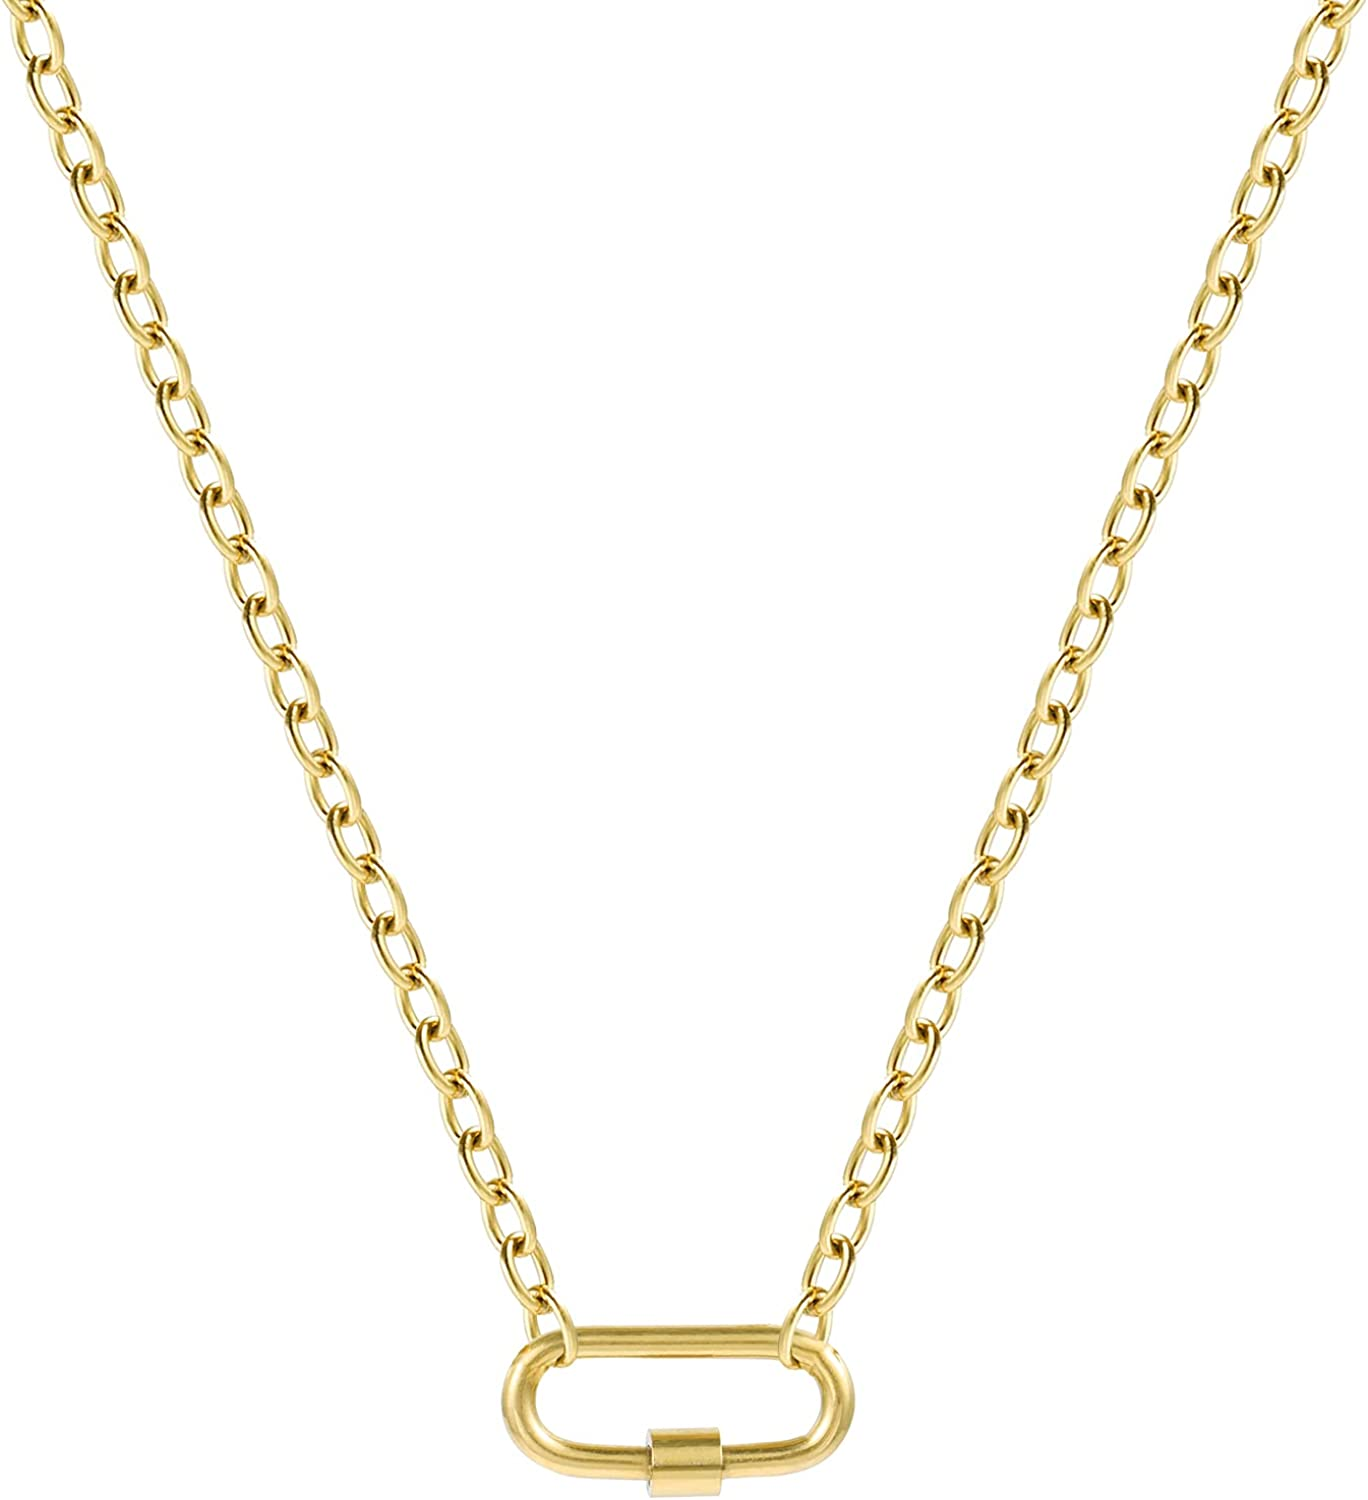 14K Gold Plated Paperclip Oval Link Pendant Necklace with Heart Square Pendant Chain Necklaces Dainty Minimalist Chains for Women Girls